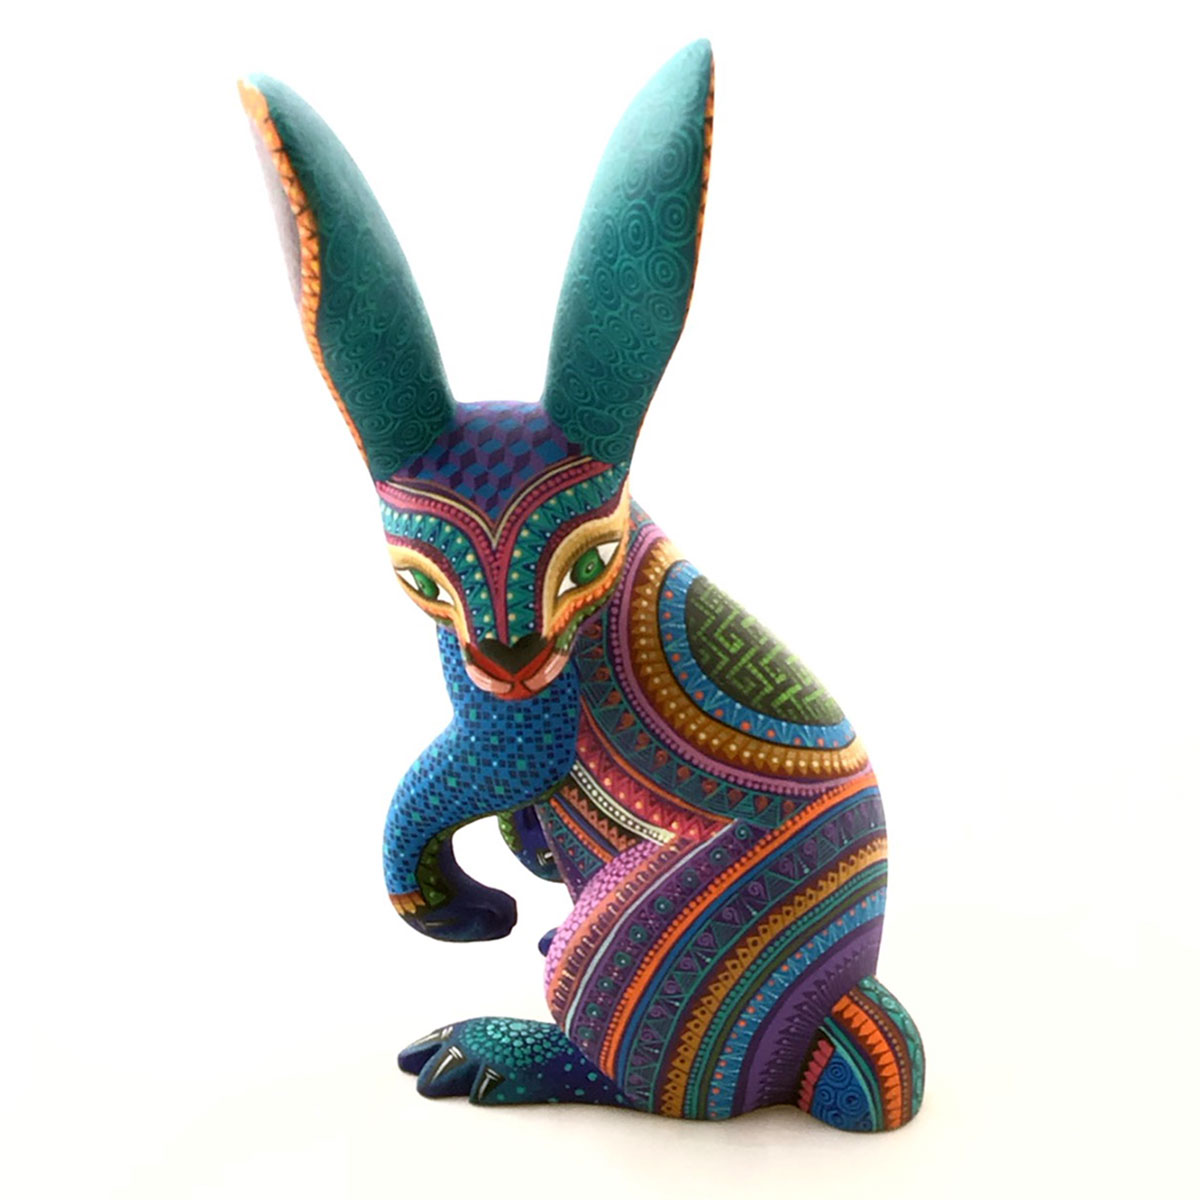 Magaly Fuentes & Jose Calvo Magaly Fuentes and Jose Calvo: Colorful Rabbit Rabbits